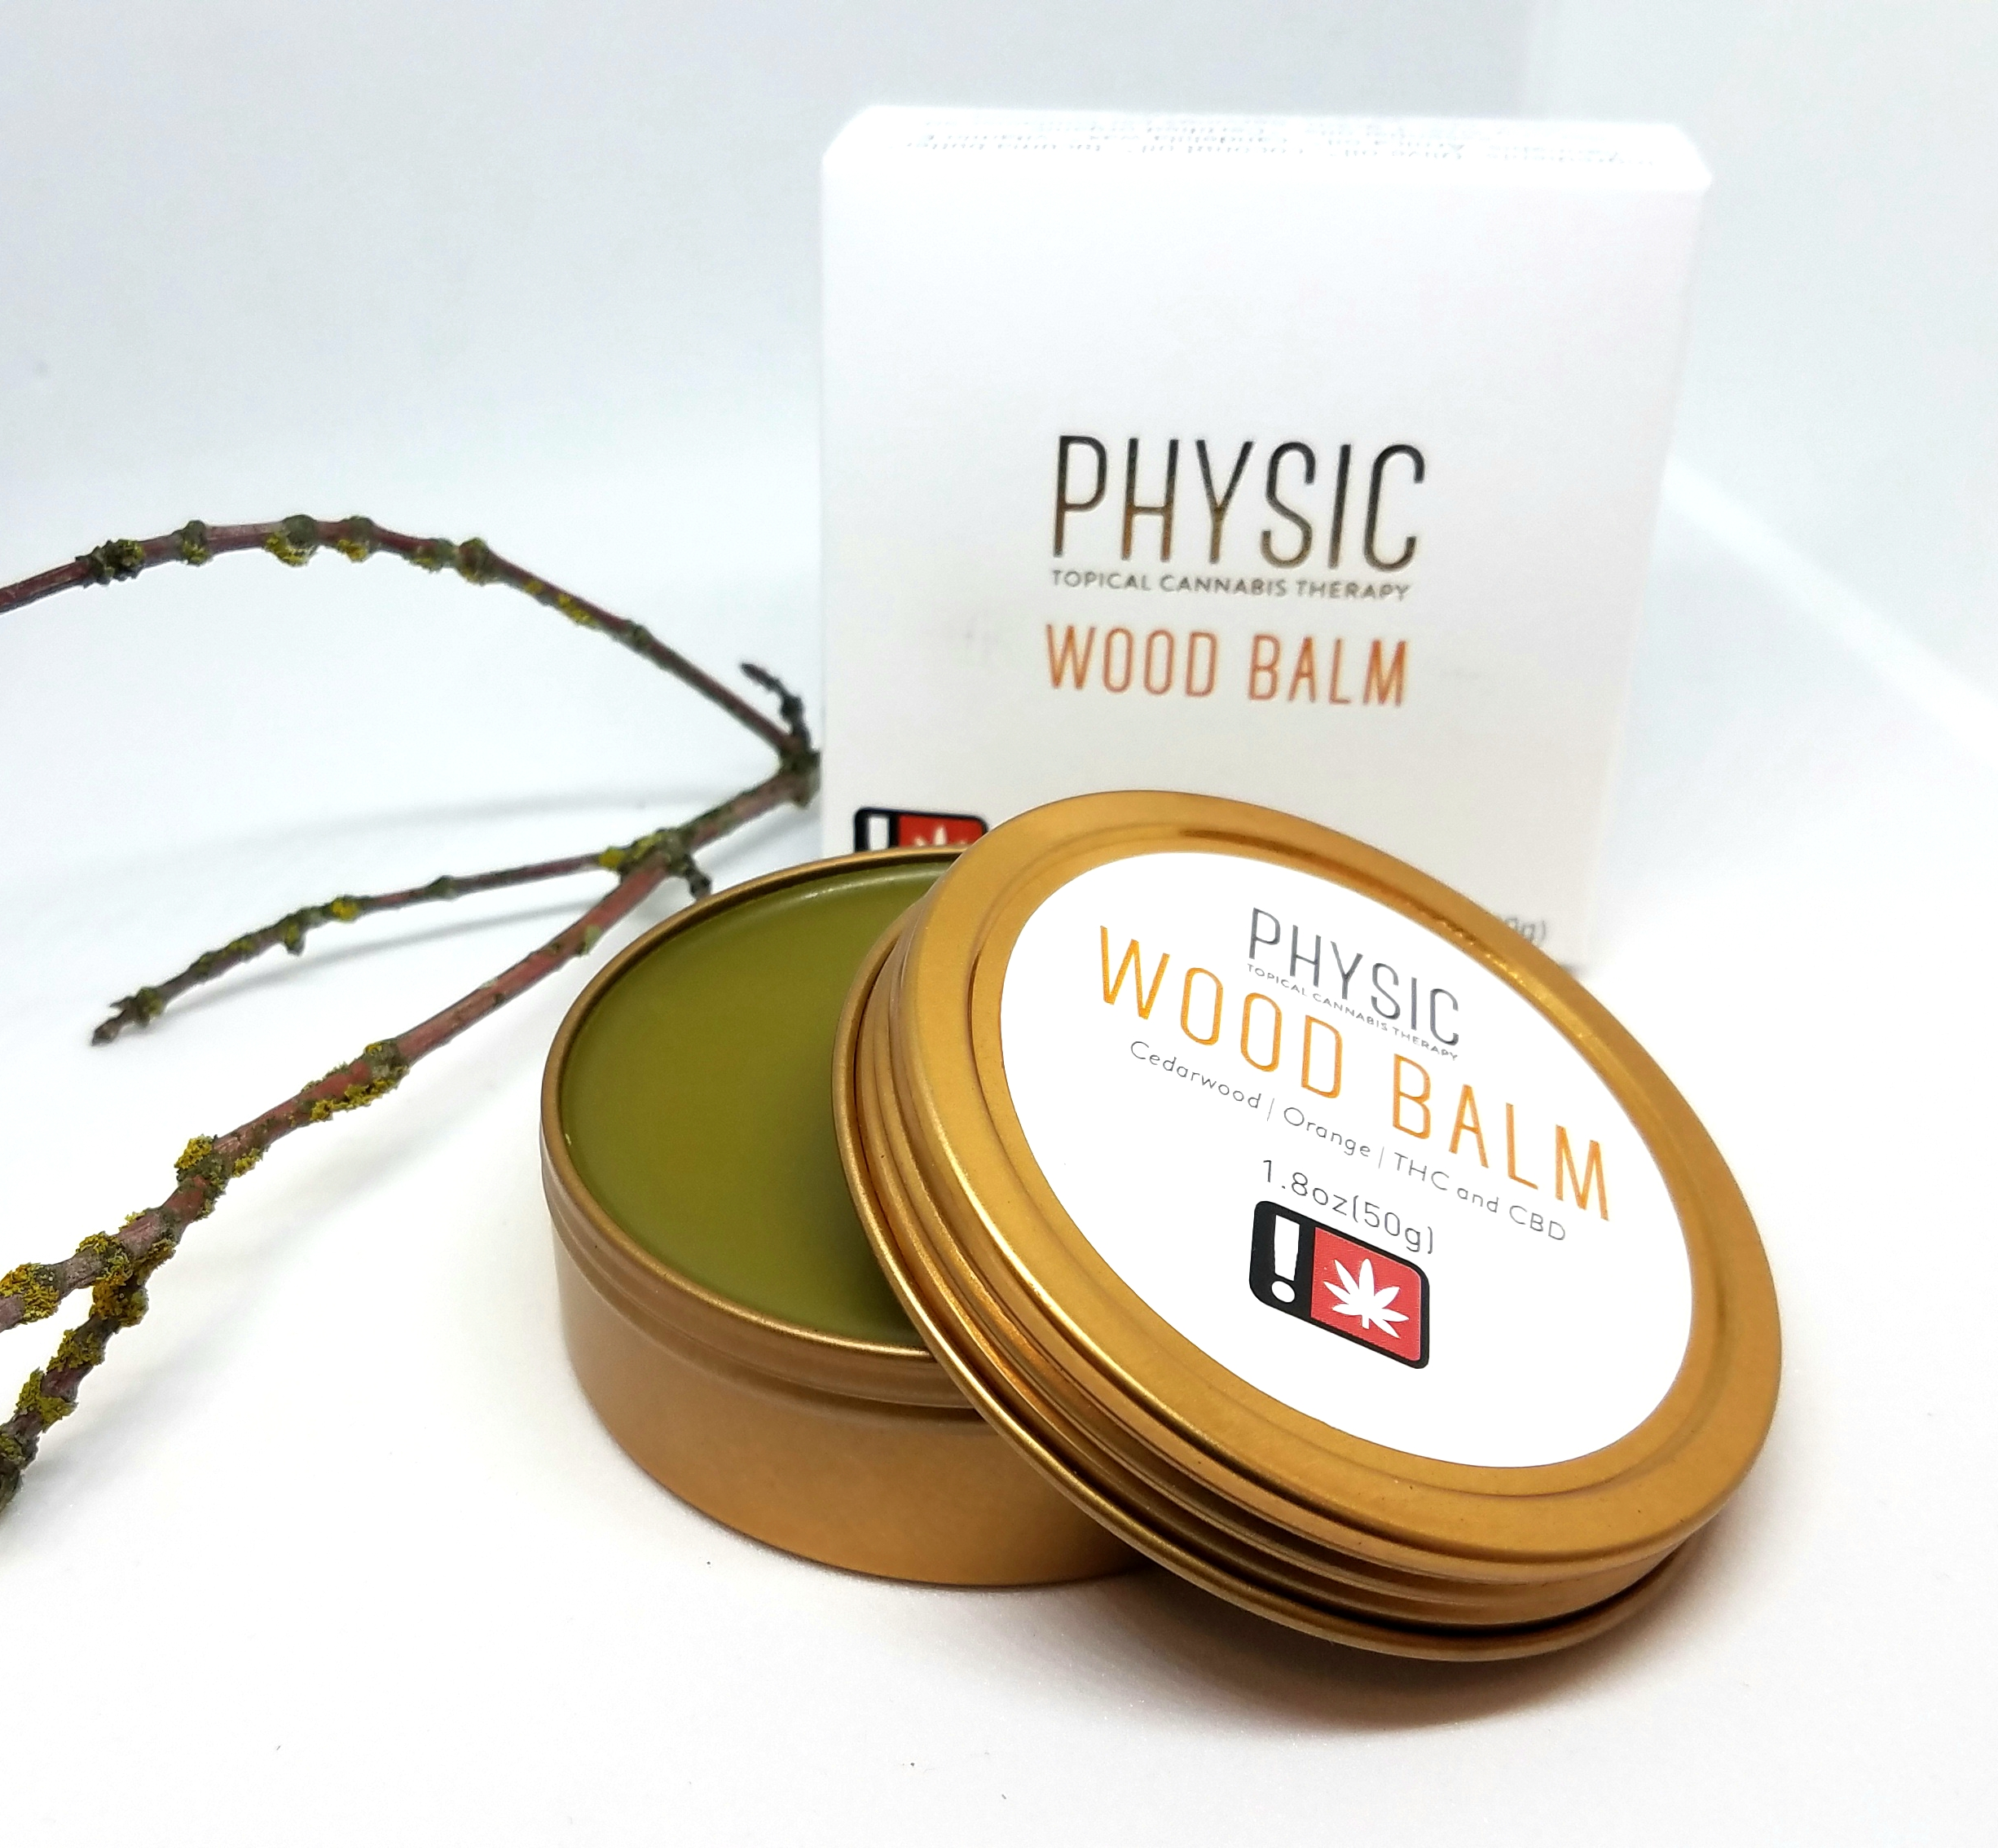 Wood Balm from Physic